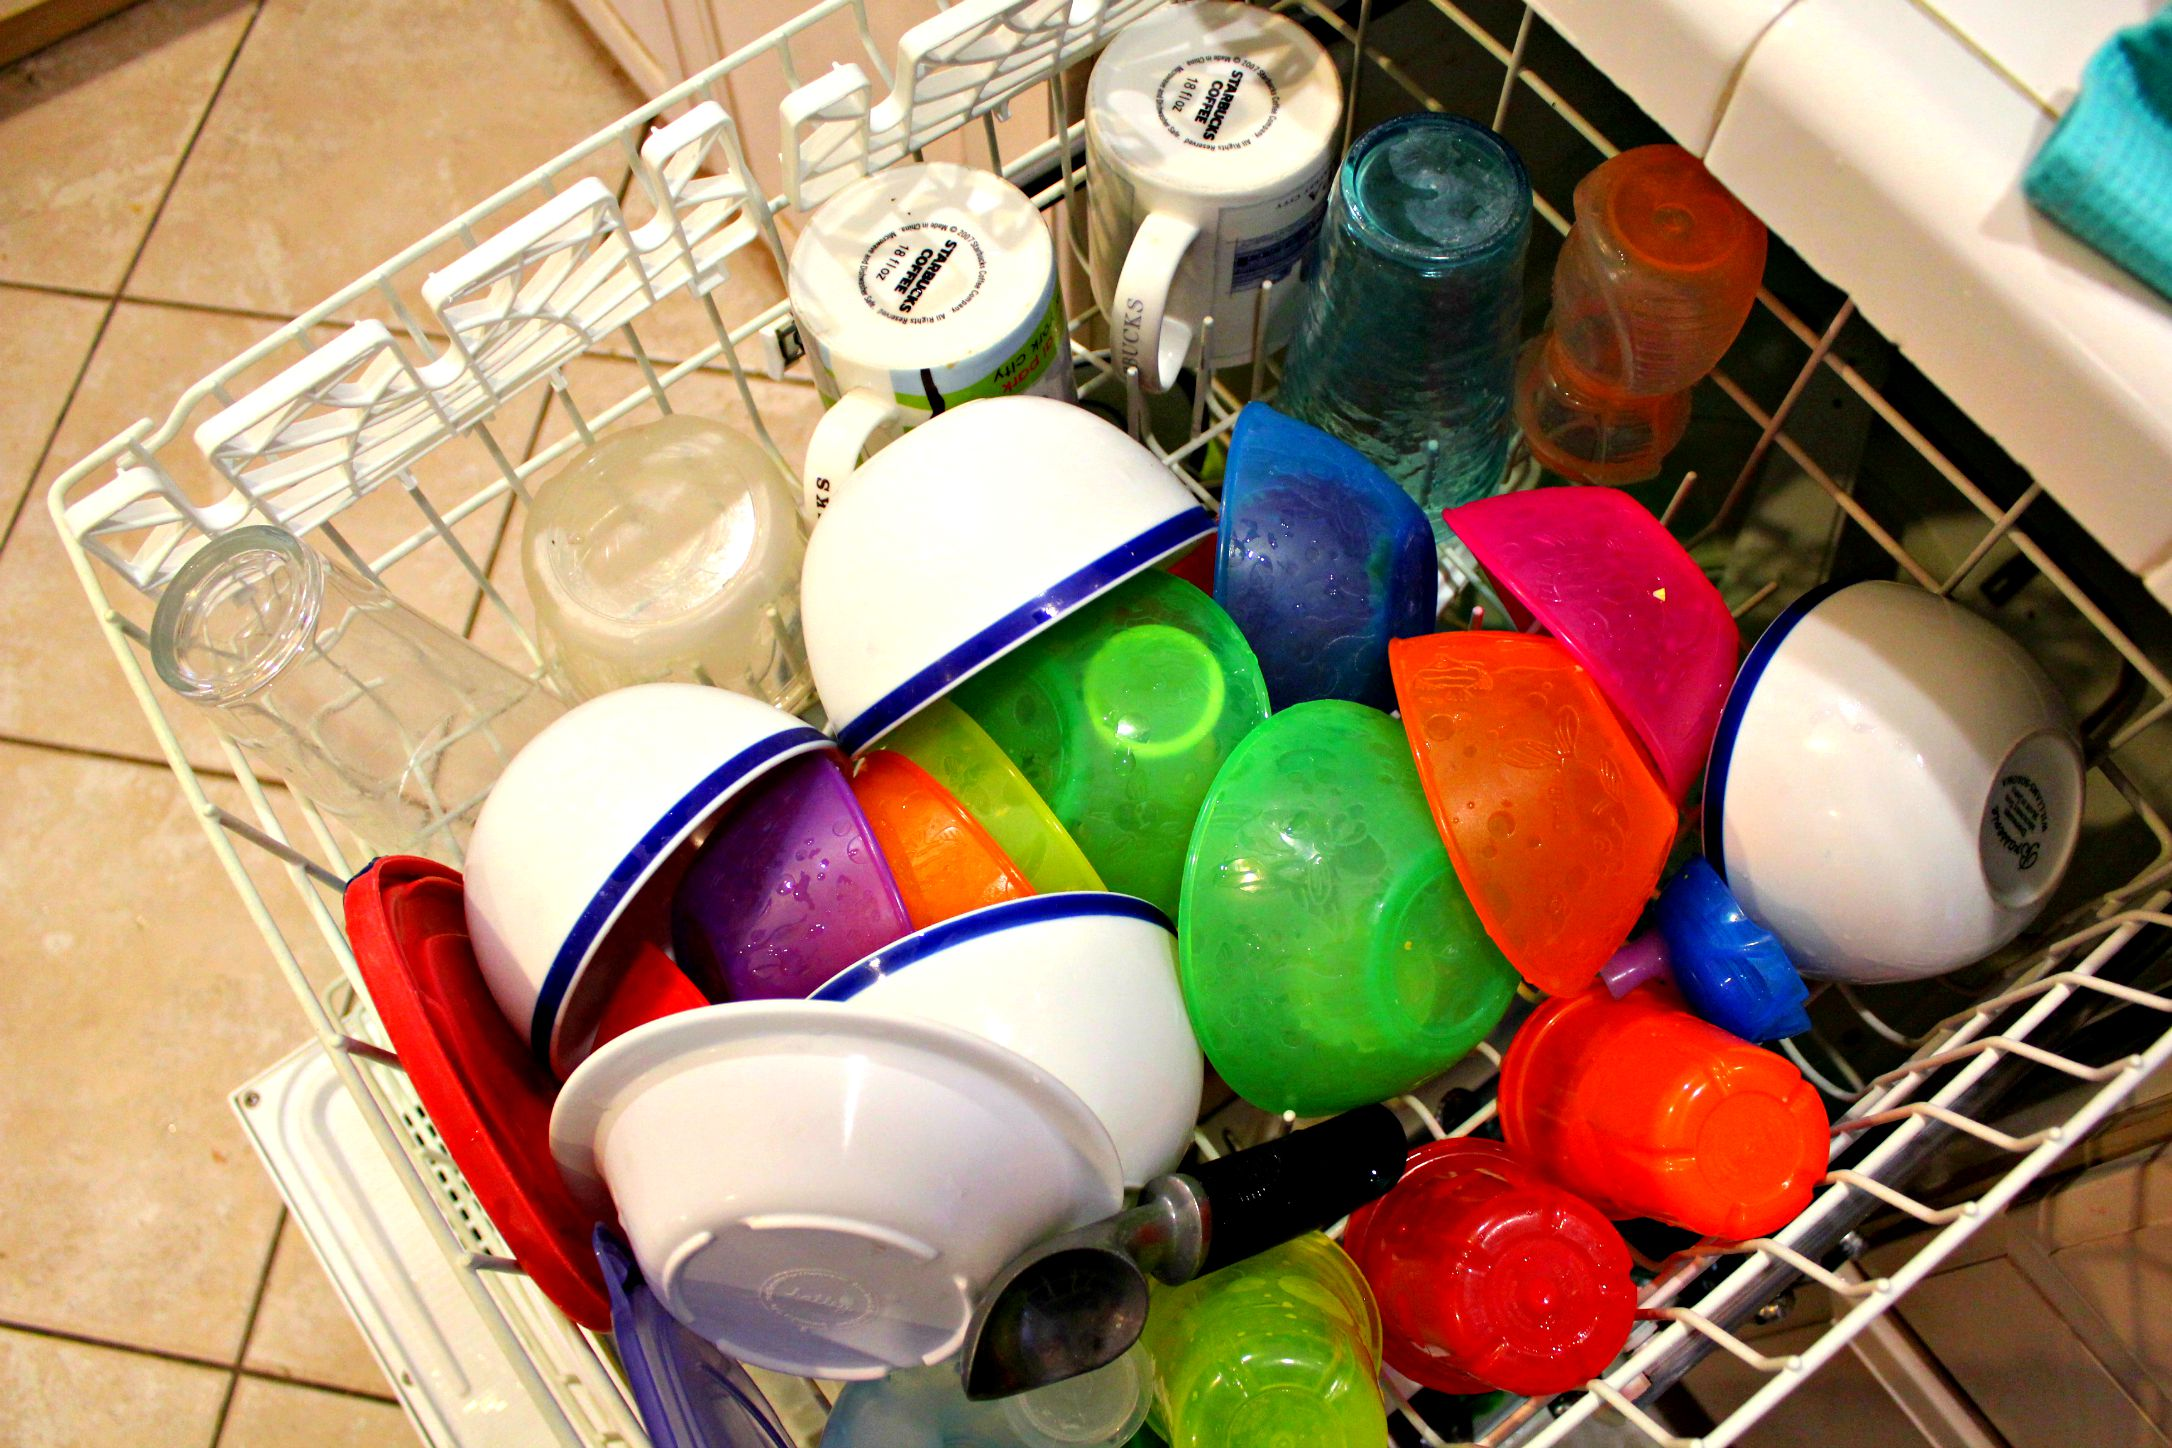 How Our Dishwasher's Life Has Changed Since Kids